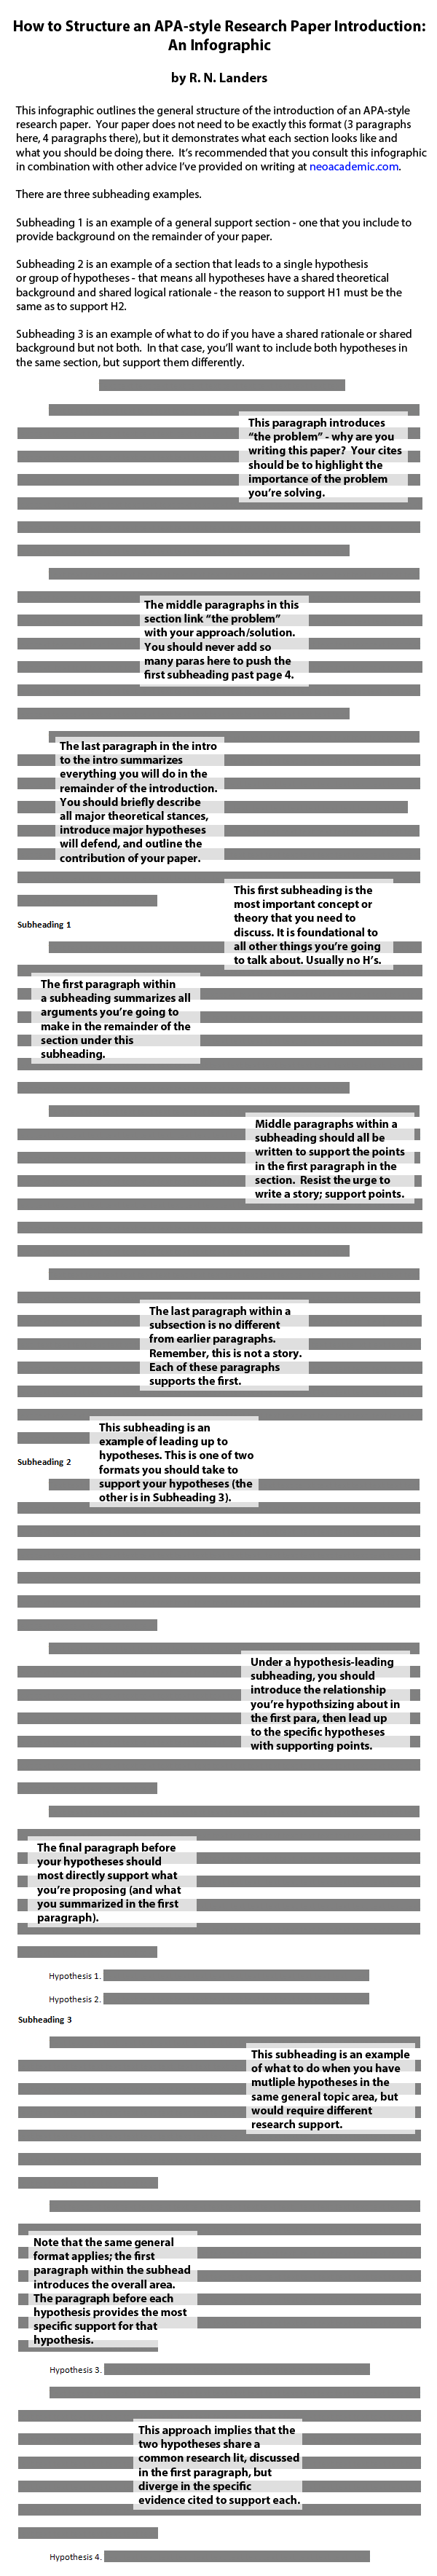 007 Intro Infographic2 Research Paper Writingn Introduction To Top Writing An A Effective For How Write Powerpoint Ppt Full